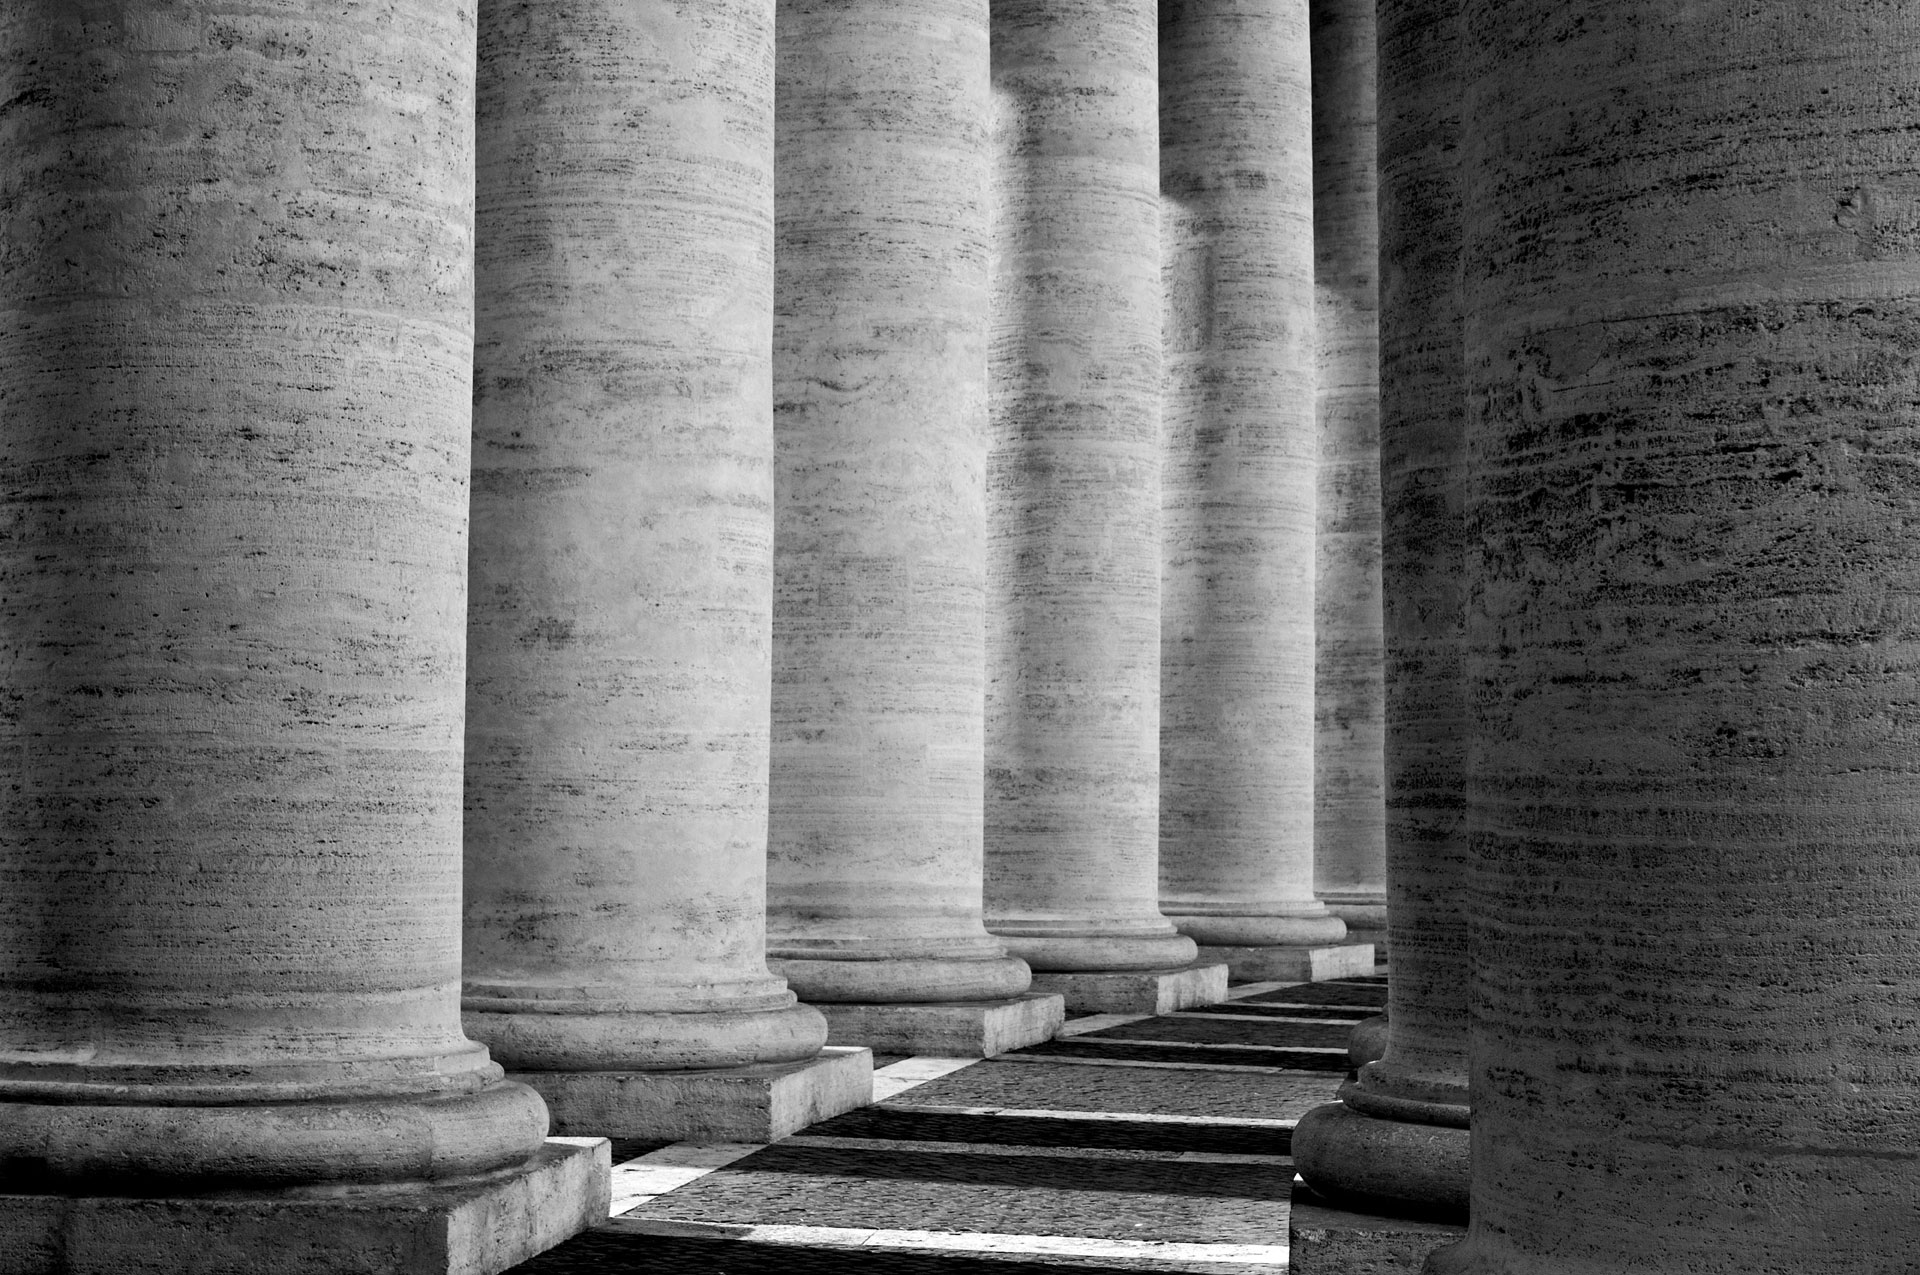 Columns of St Peter's